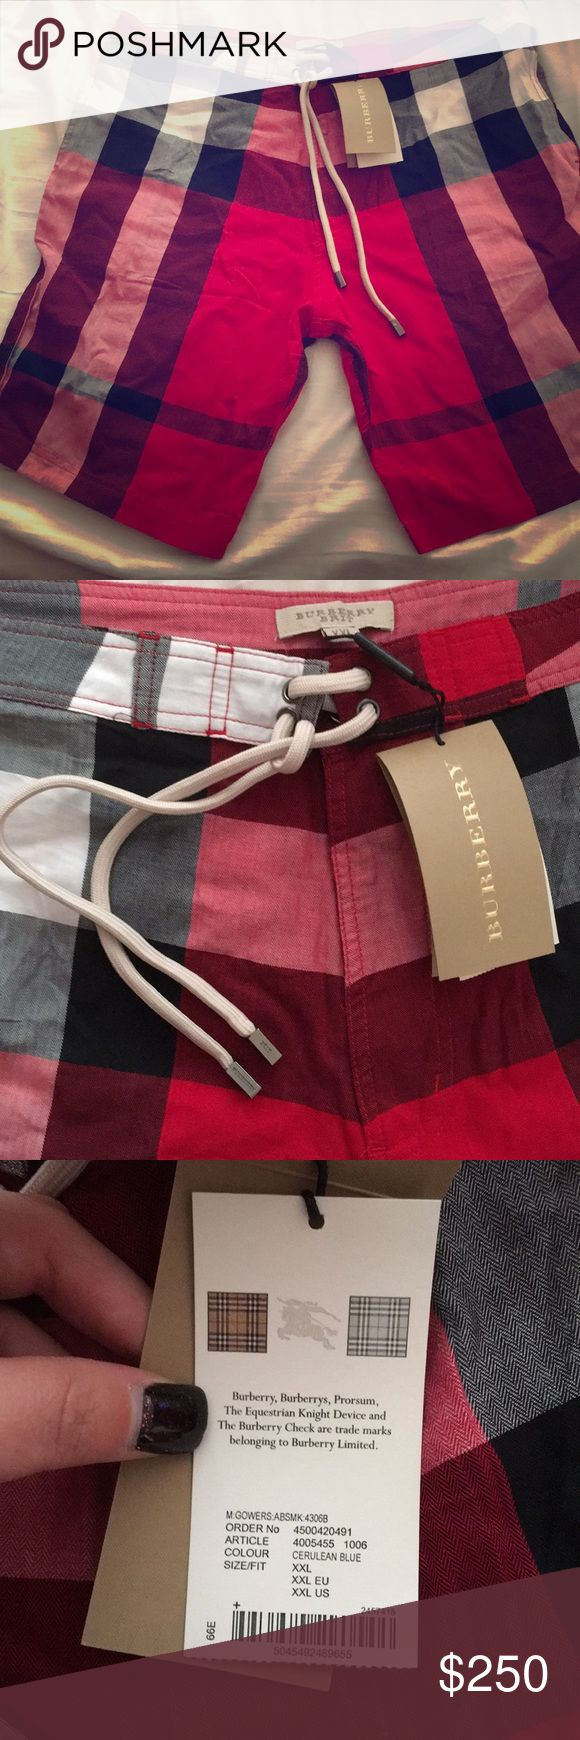 Burberry Brit men's shorts Red plaid check print. 100% authentic. This says size XXL but I believe it fits a size L best. Waist measurement 35-36 inches! Brand new with tags! Great Xmas gift💕 retails $295+tax Burberry Shorts